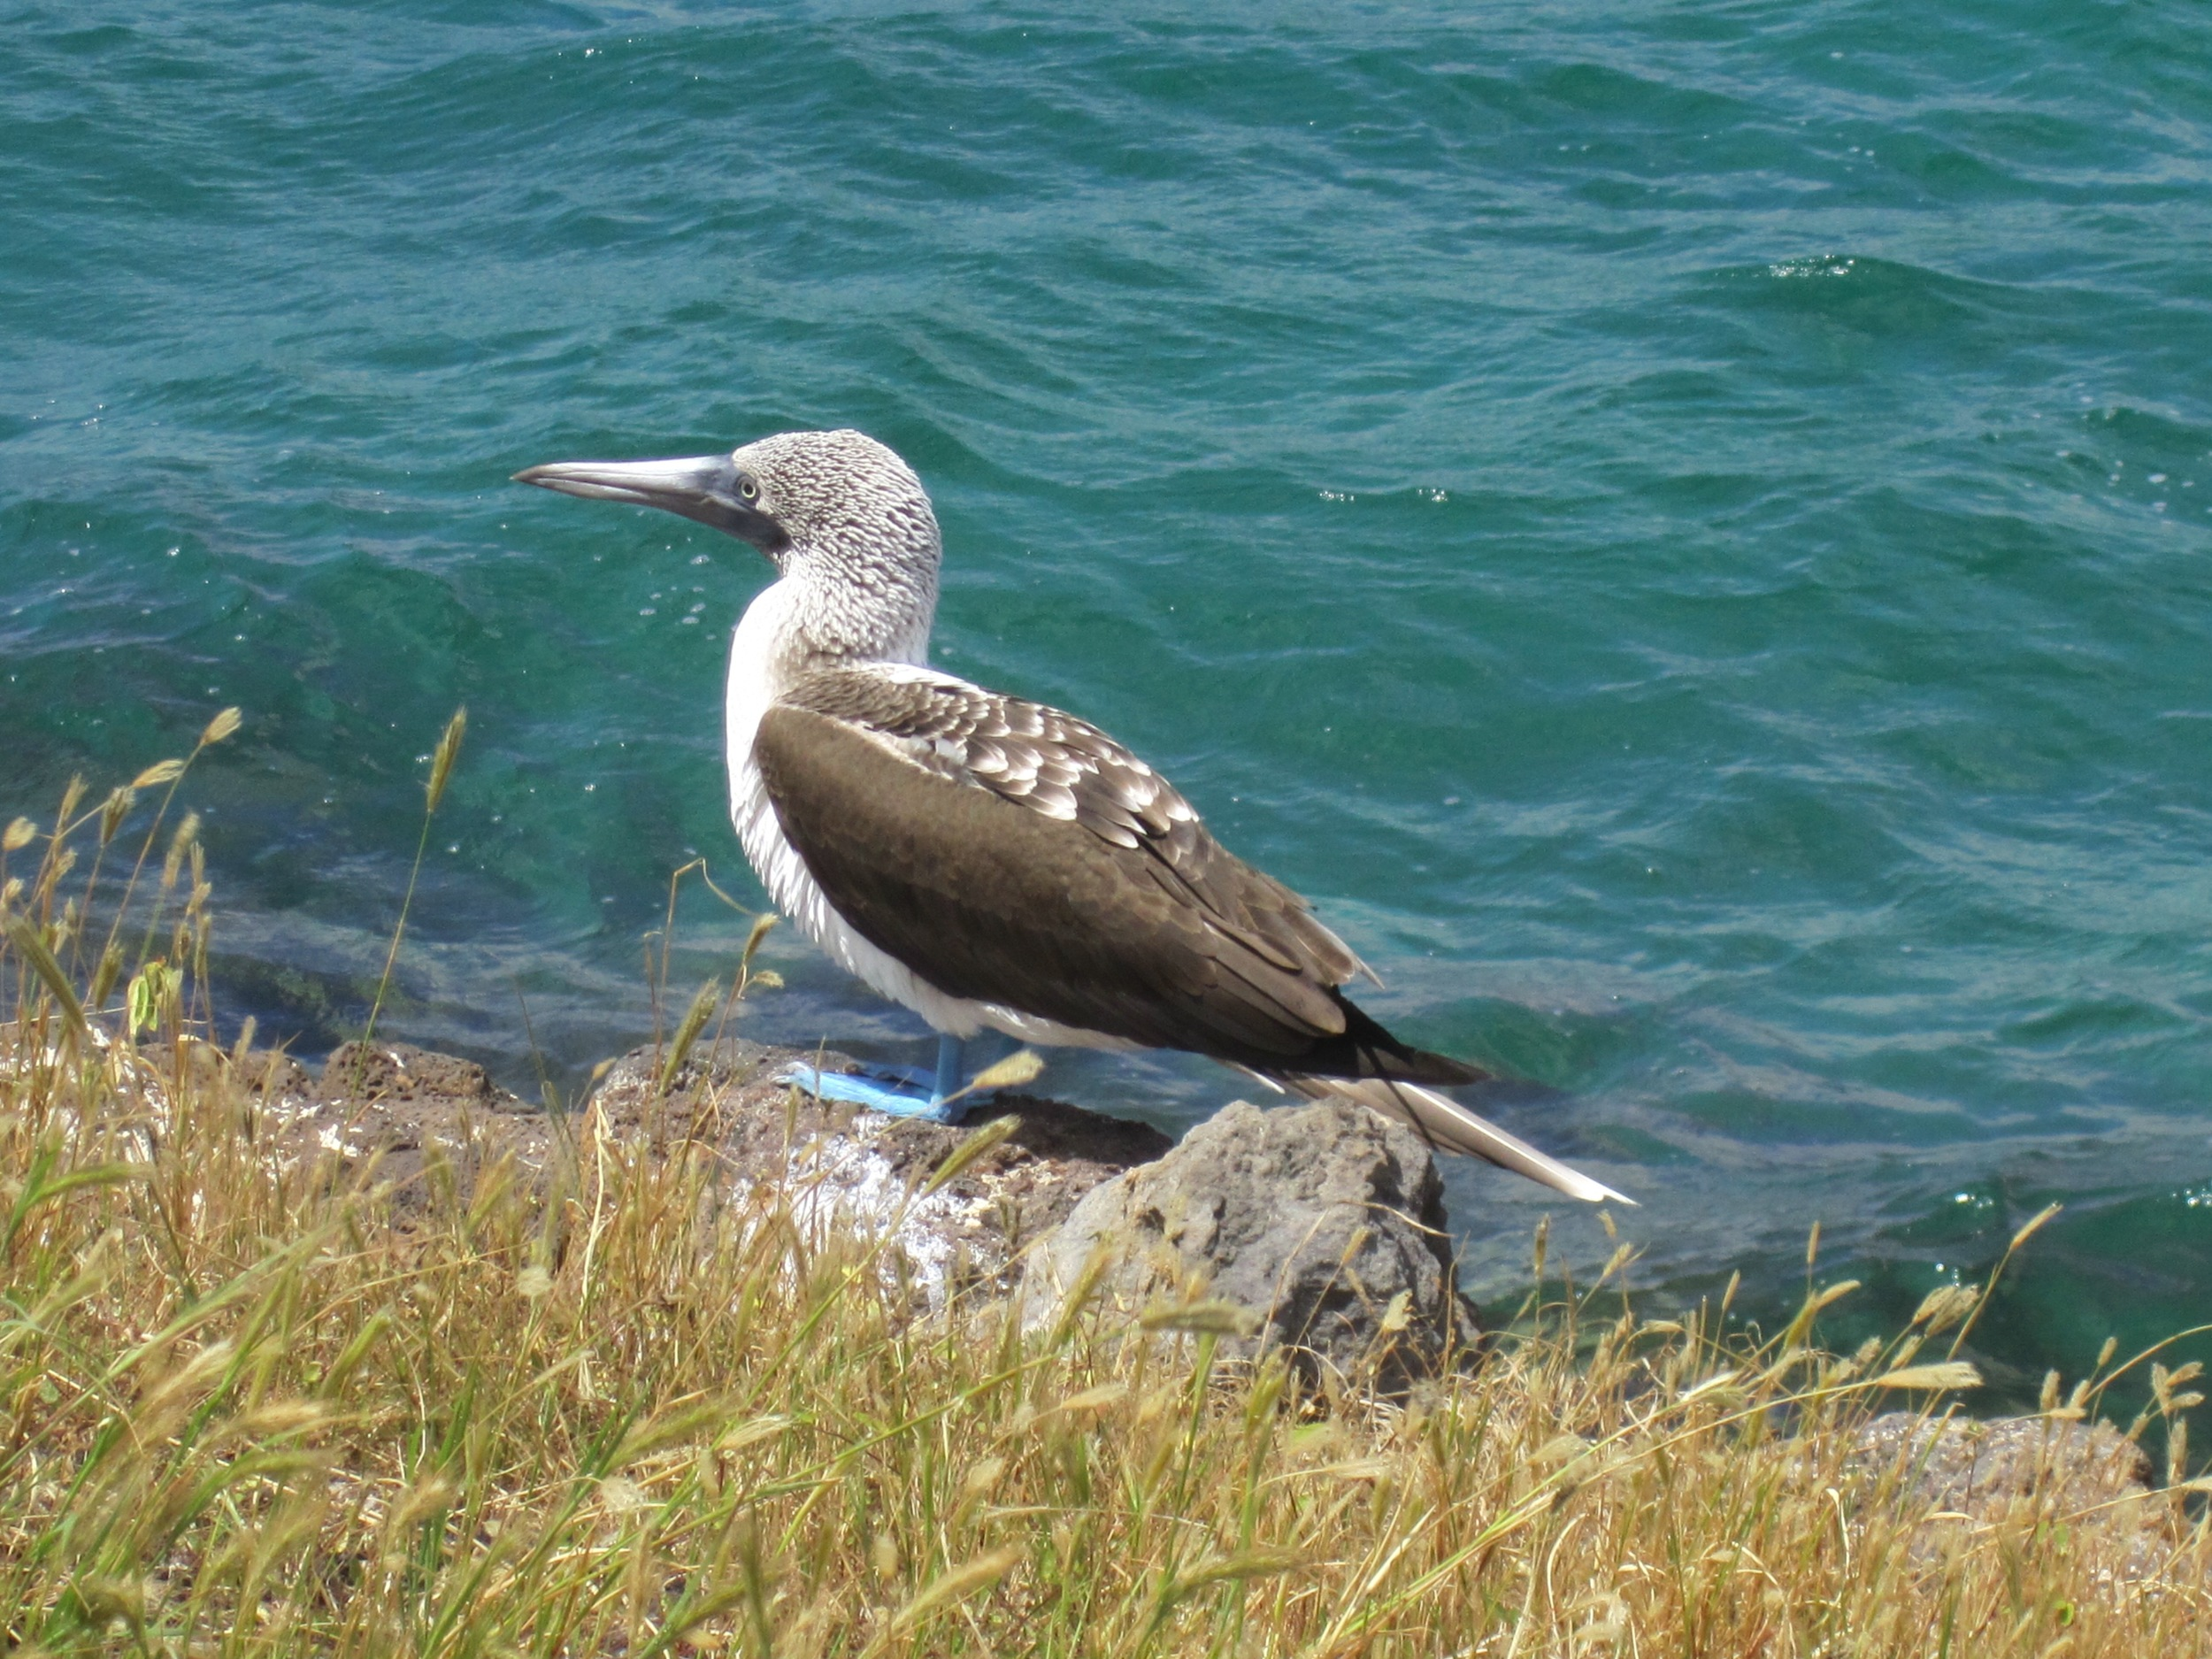 A Blue-footed Booby in the Galapagos